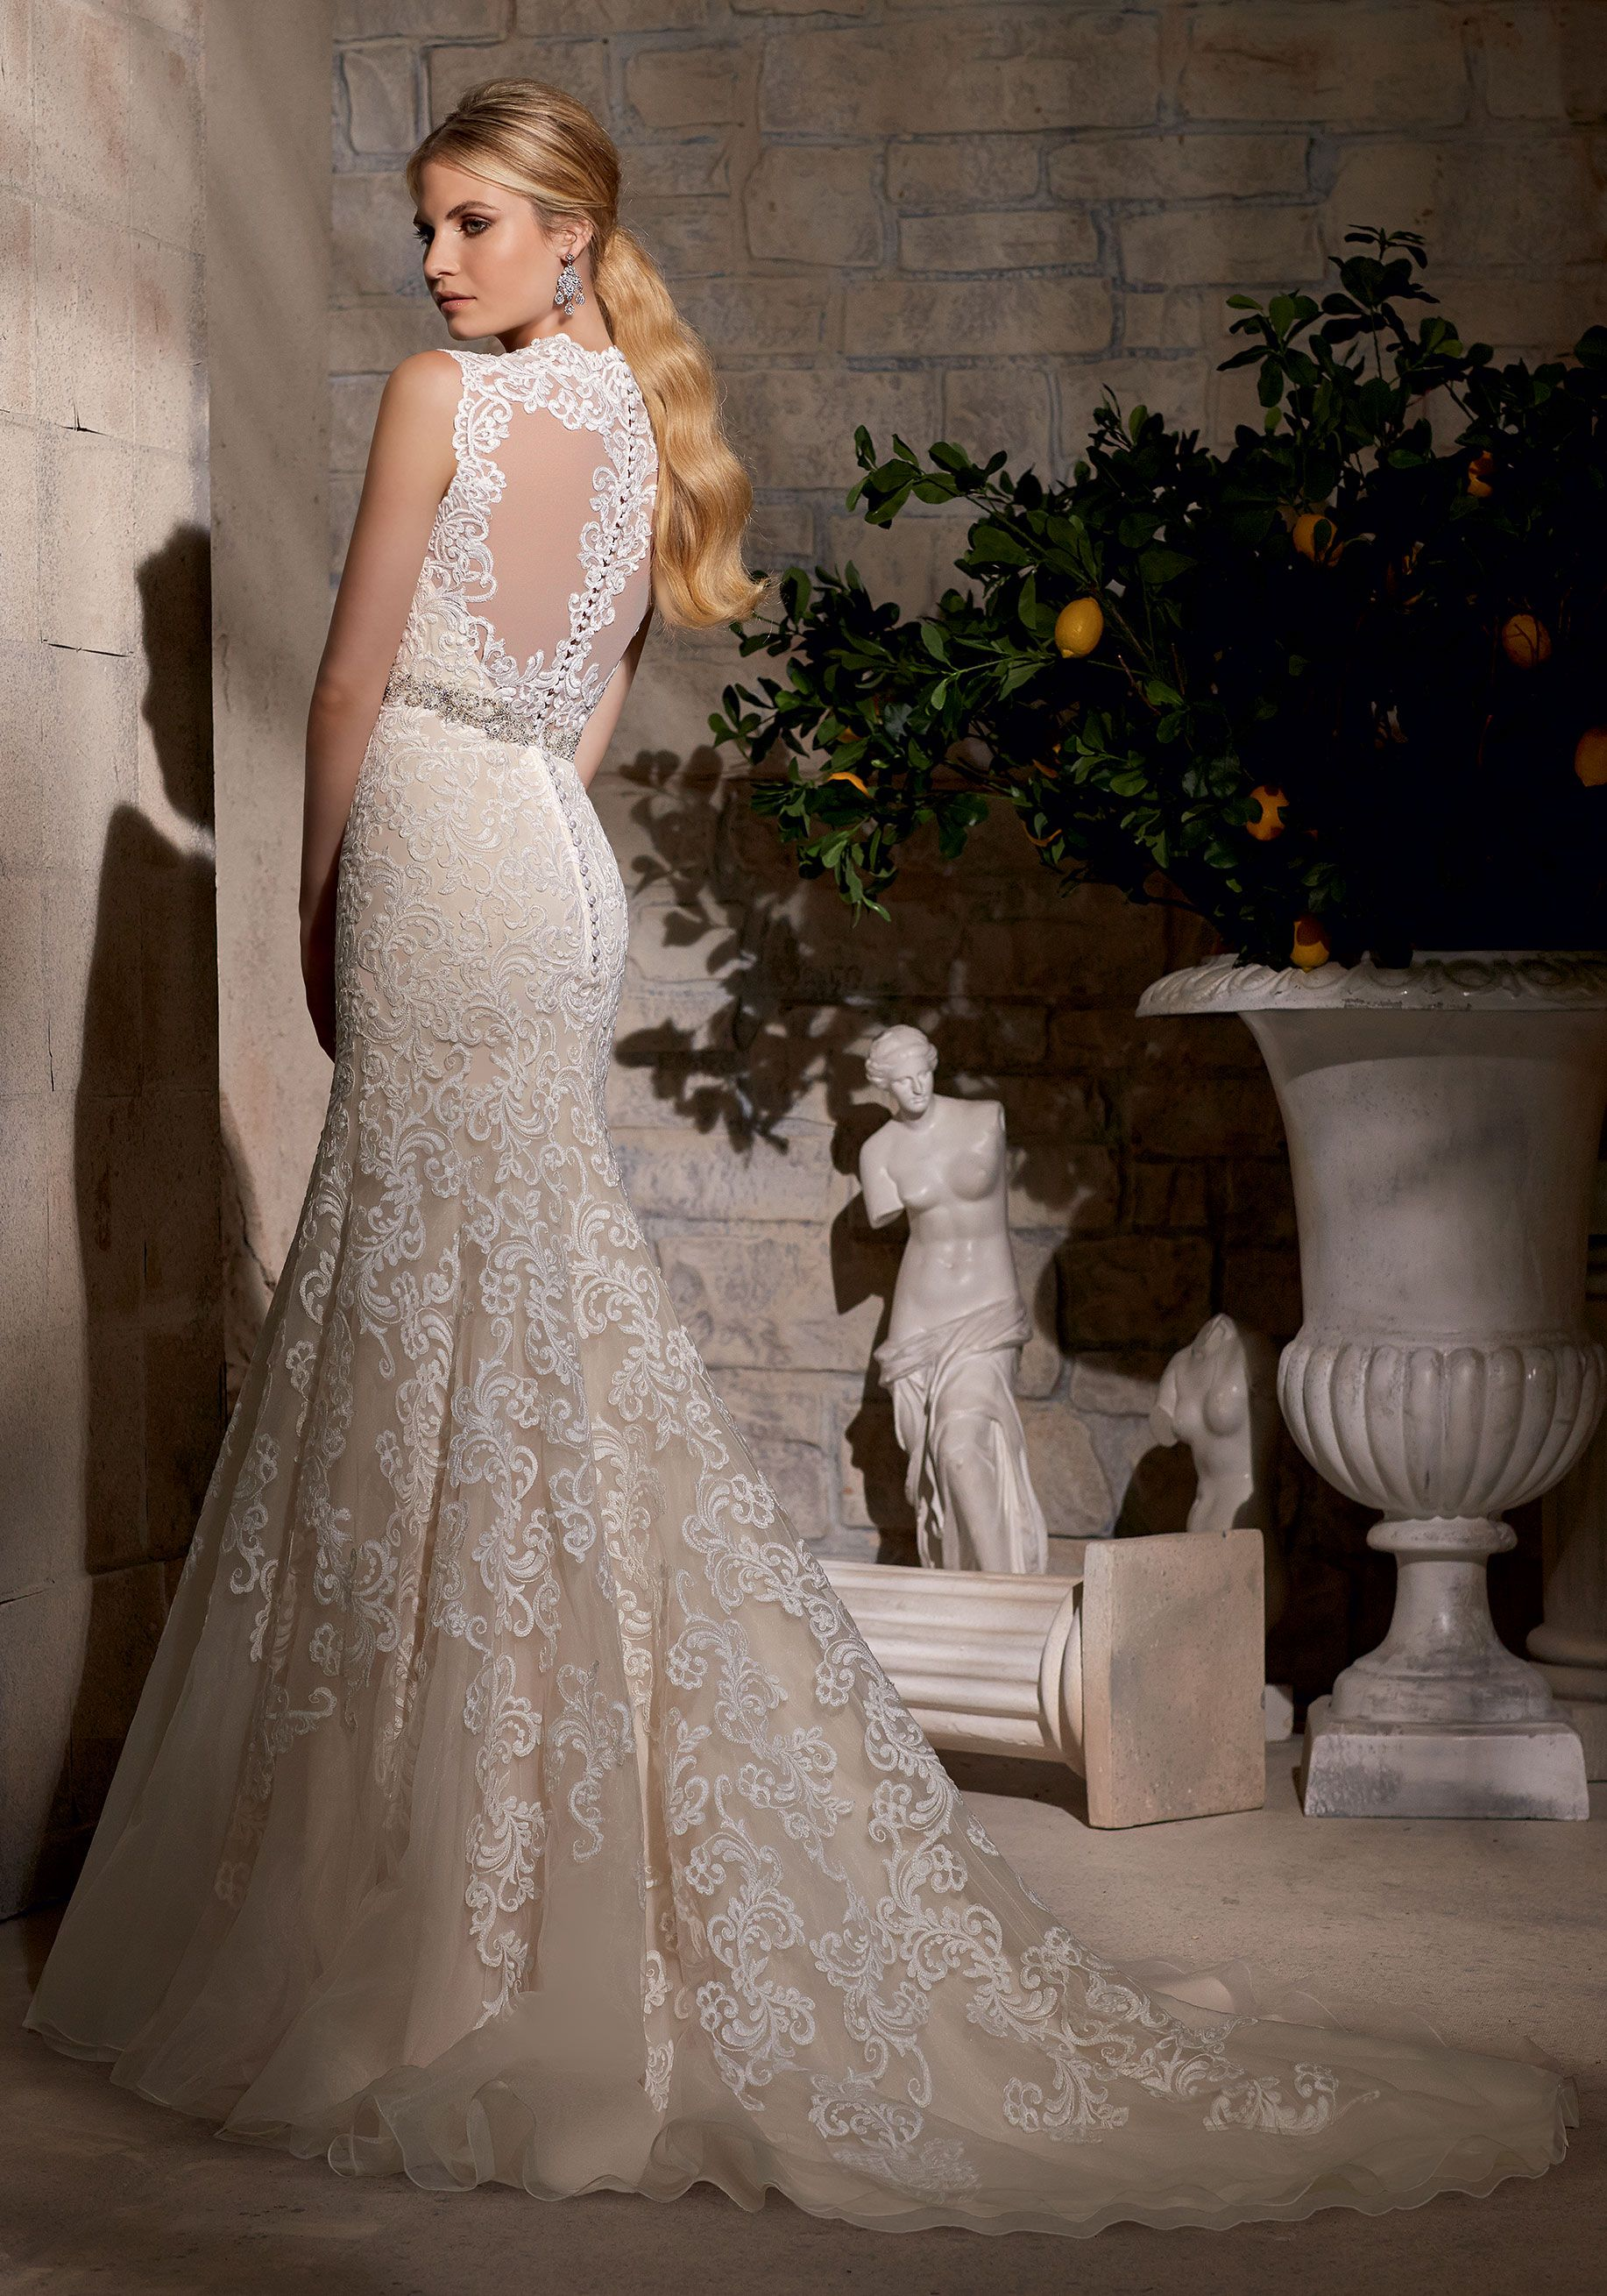 Mori lee madeline gardner wedding dress  Ornate embroidery adorns this Bridal Dress Diamante beading creates